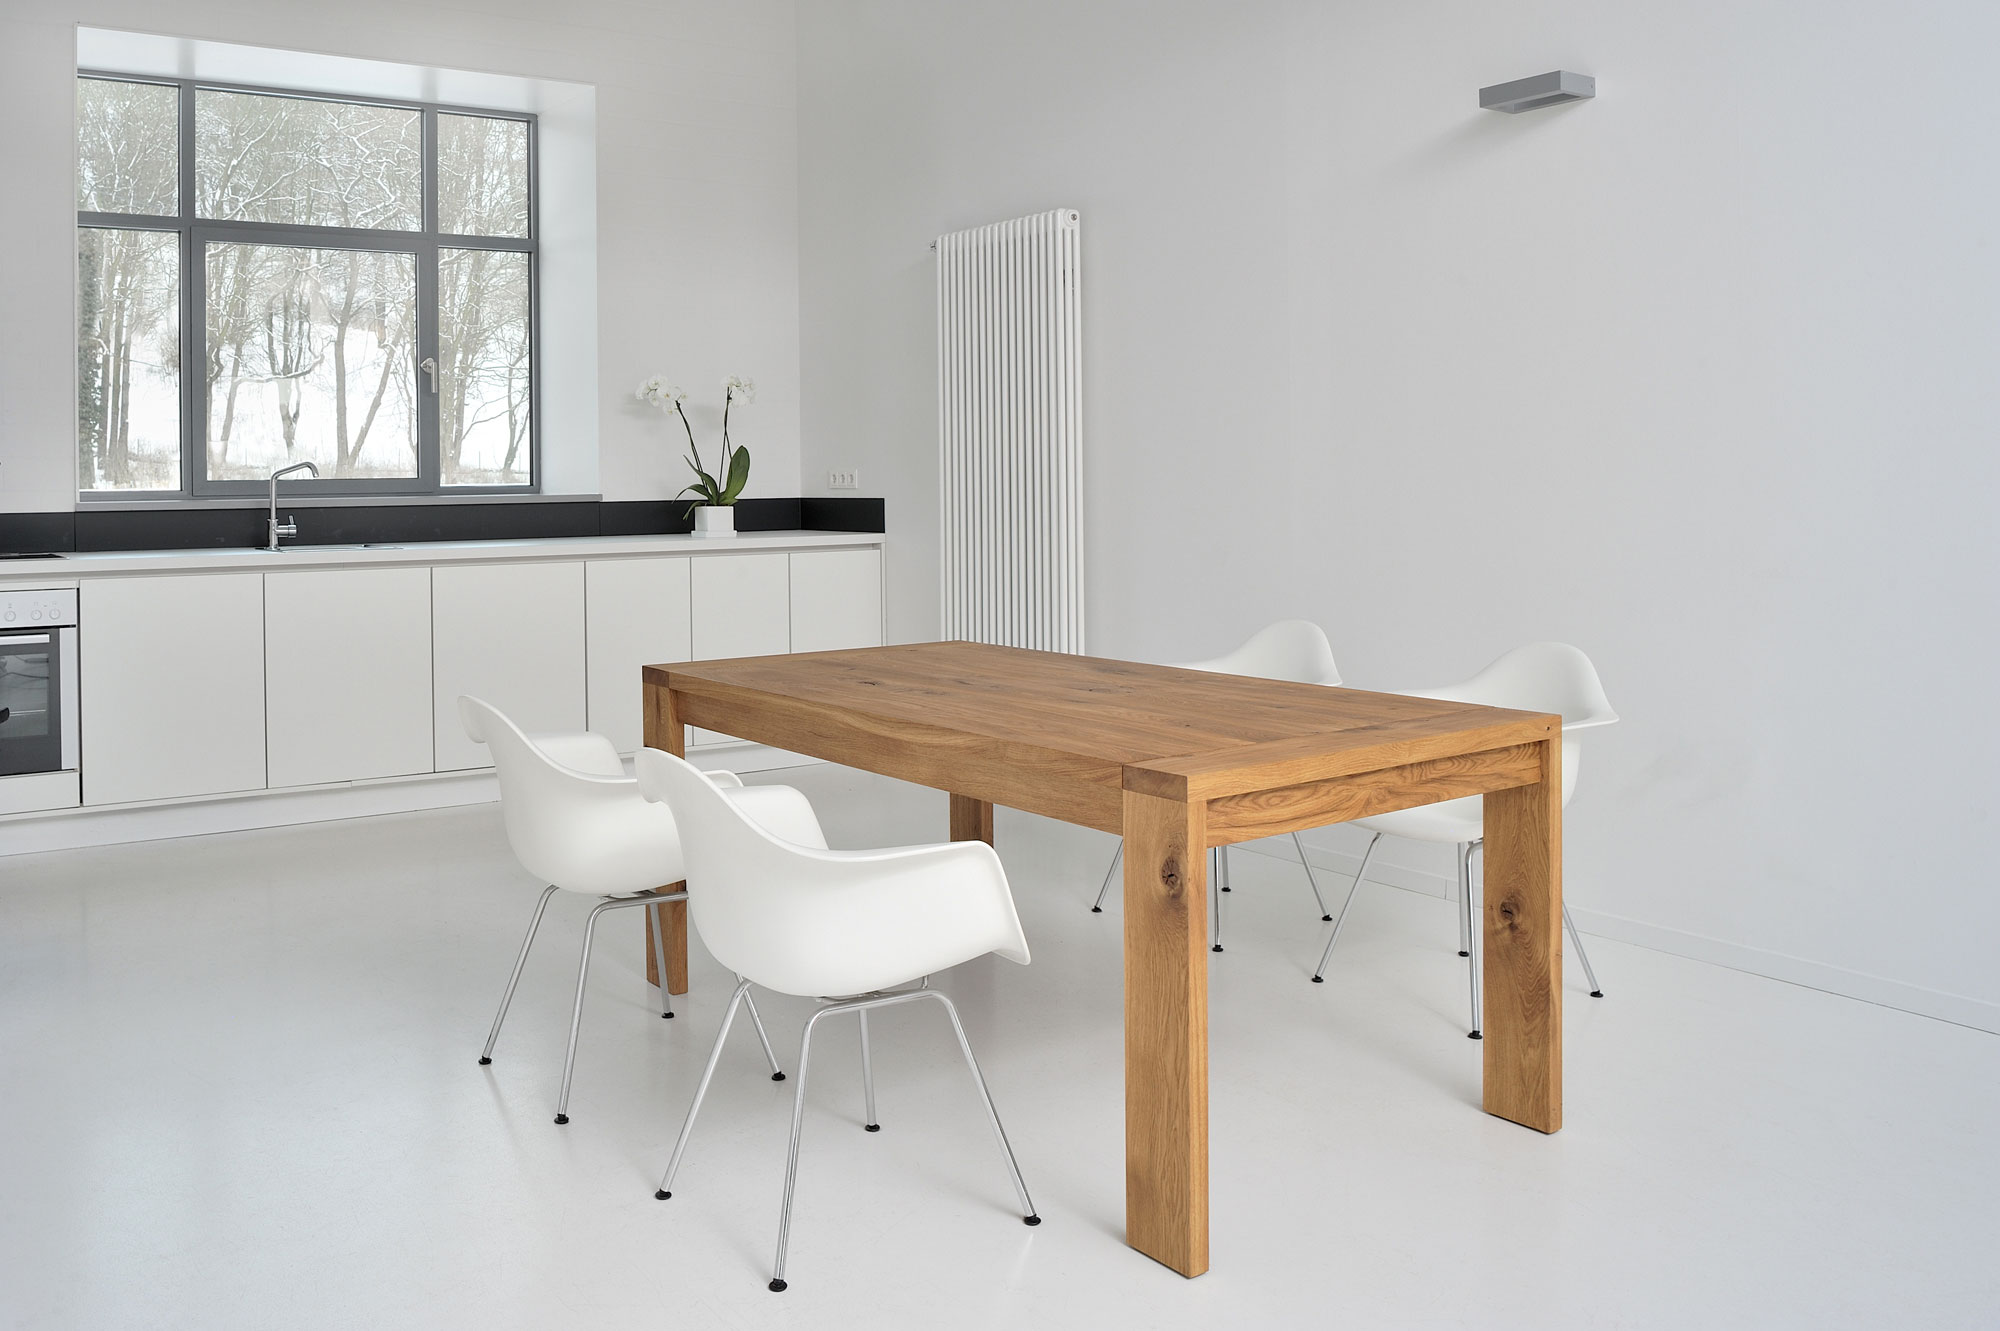 Extendable Table LUNGO 2756 custom made in solid wood by vitamin design